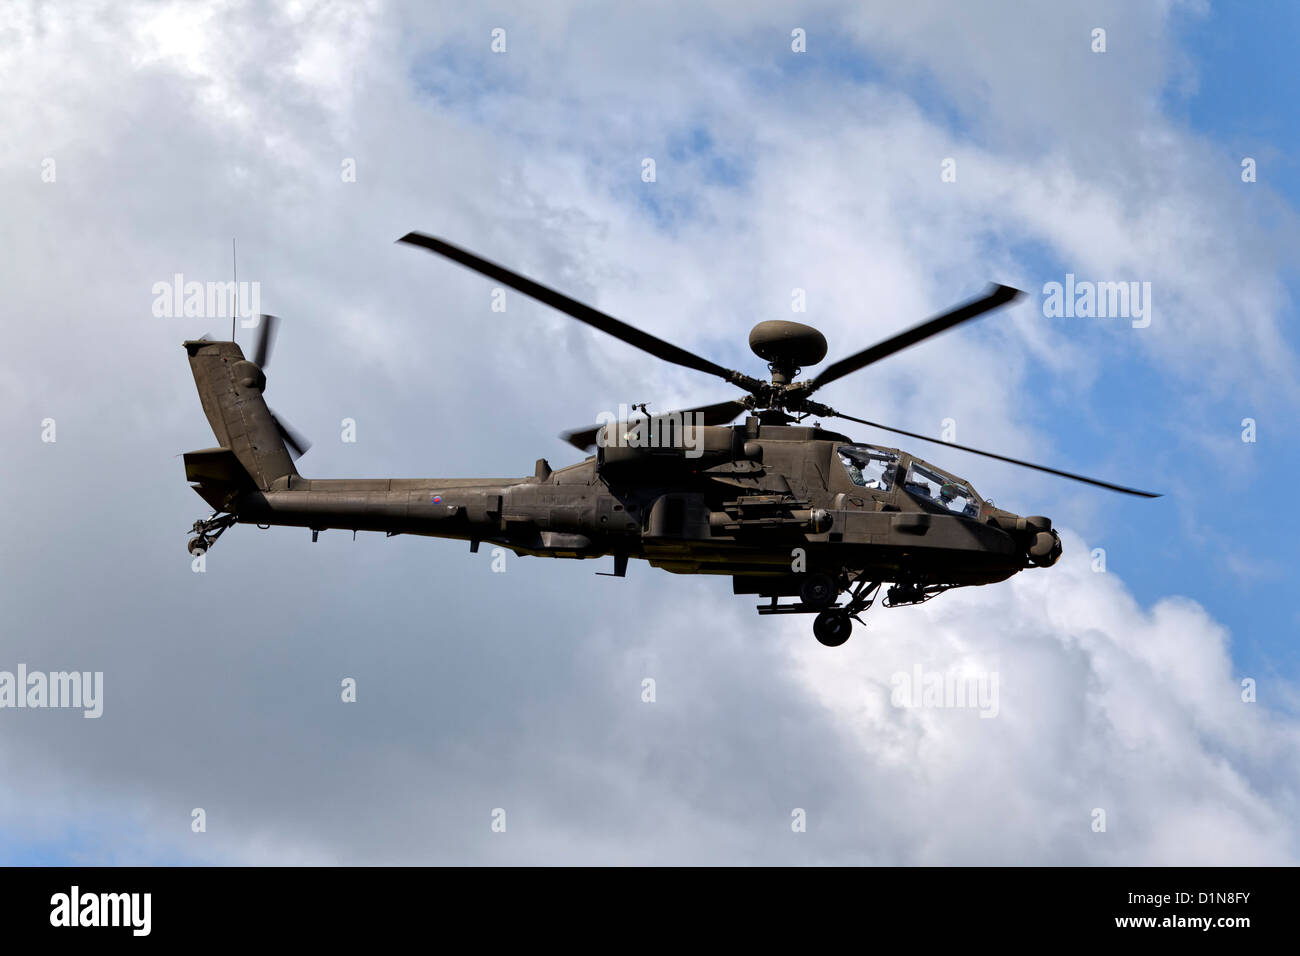 British Army WAH-64D Longbow Apache AH1 Attack Helicopter - Stock Image